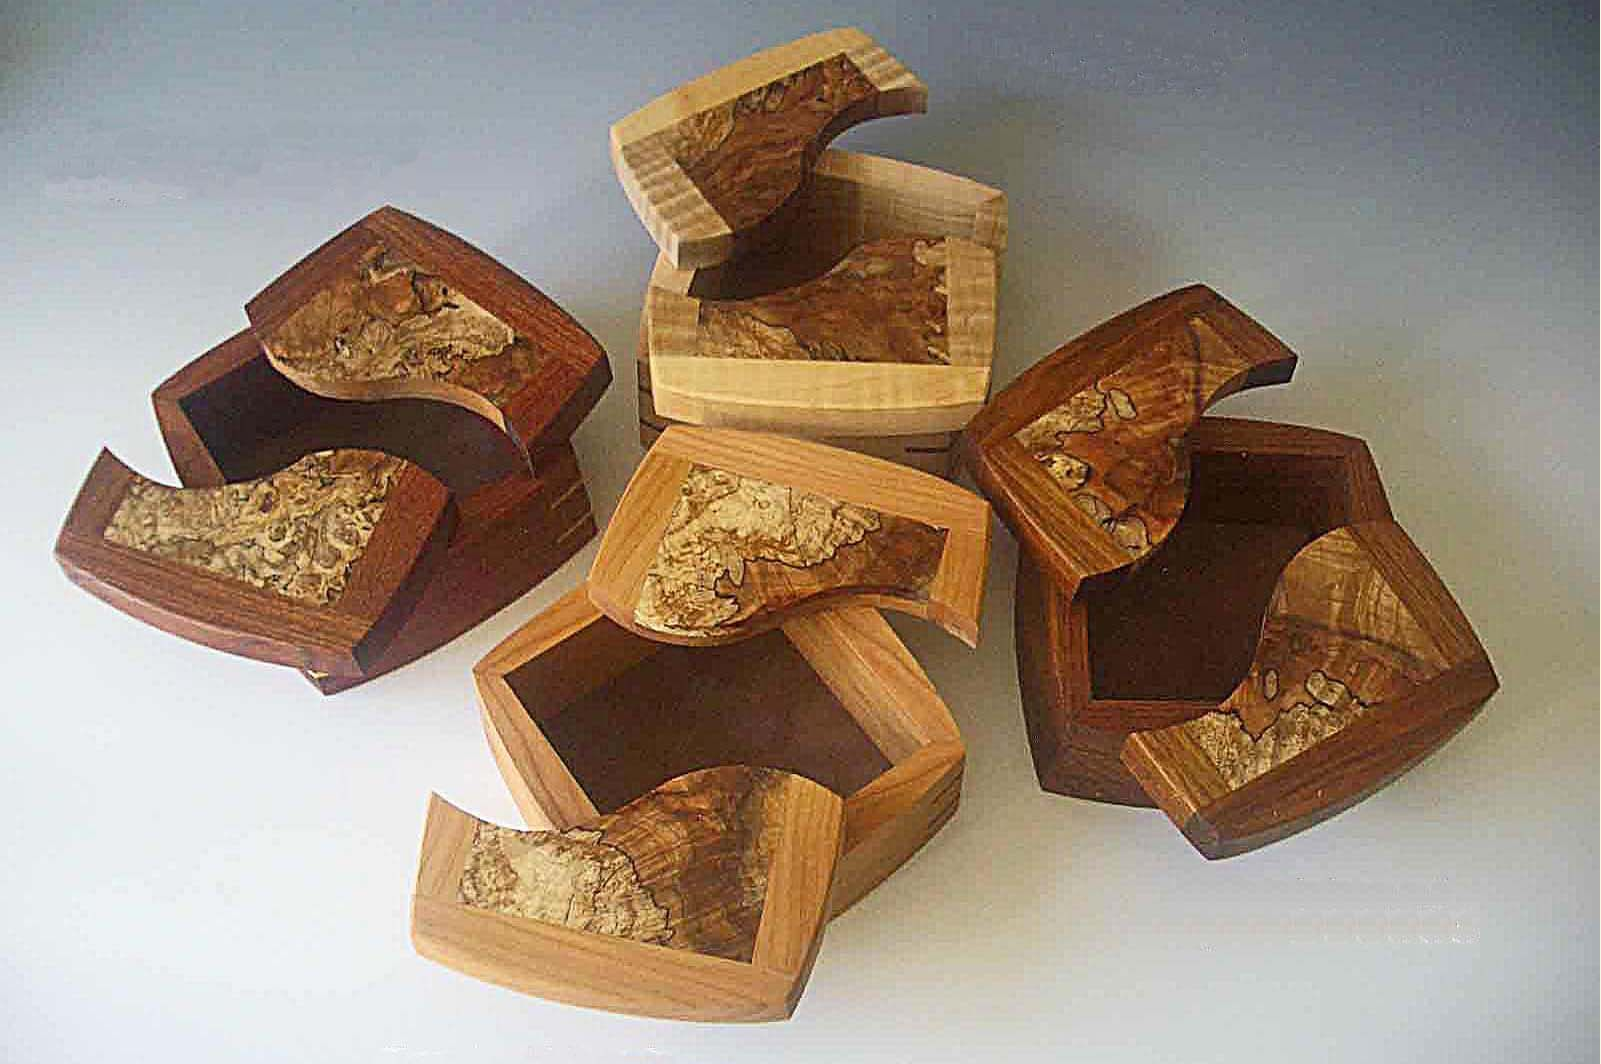 Handcrafted wood jewelry boxes - Wooden Keepsake Box Handcrafted Wood Box And Decorative Keepsake Box